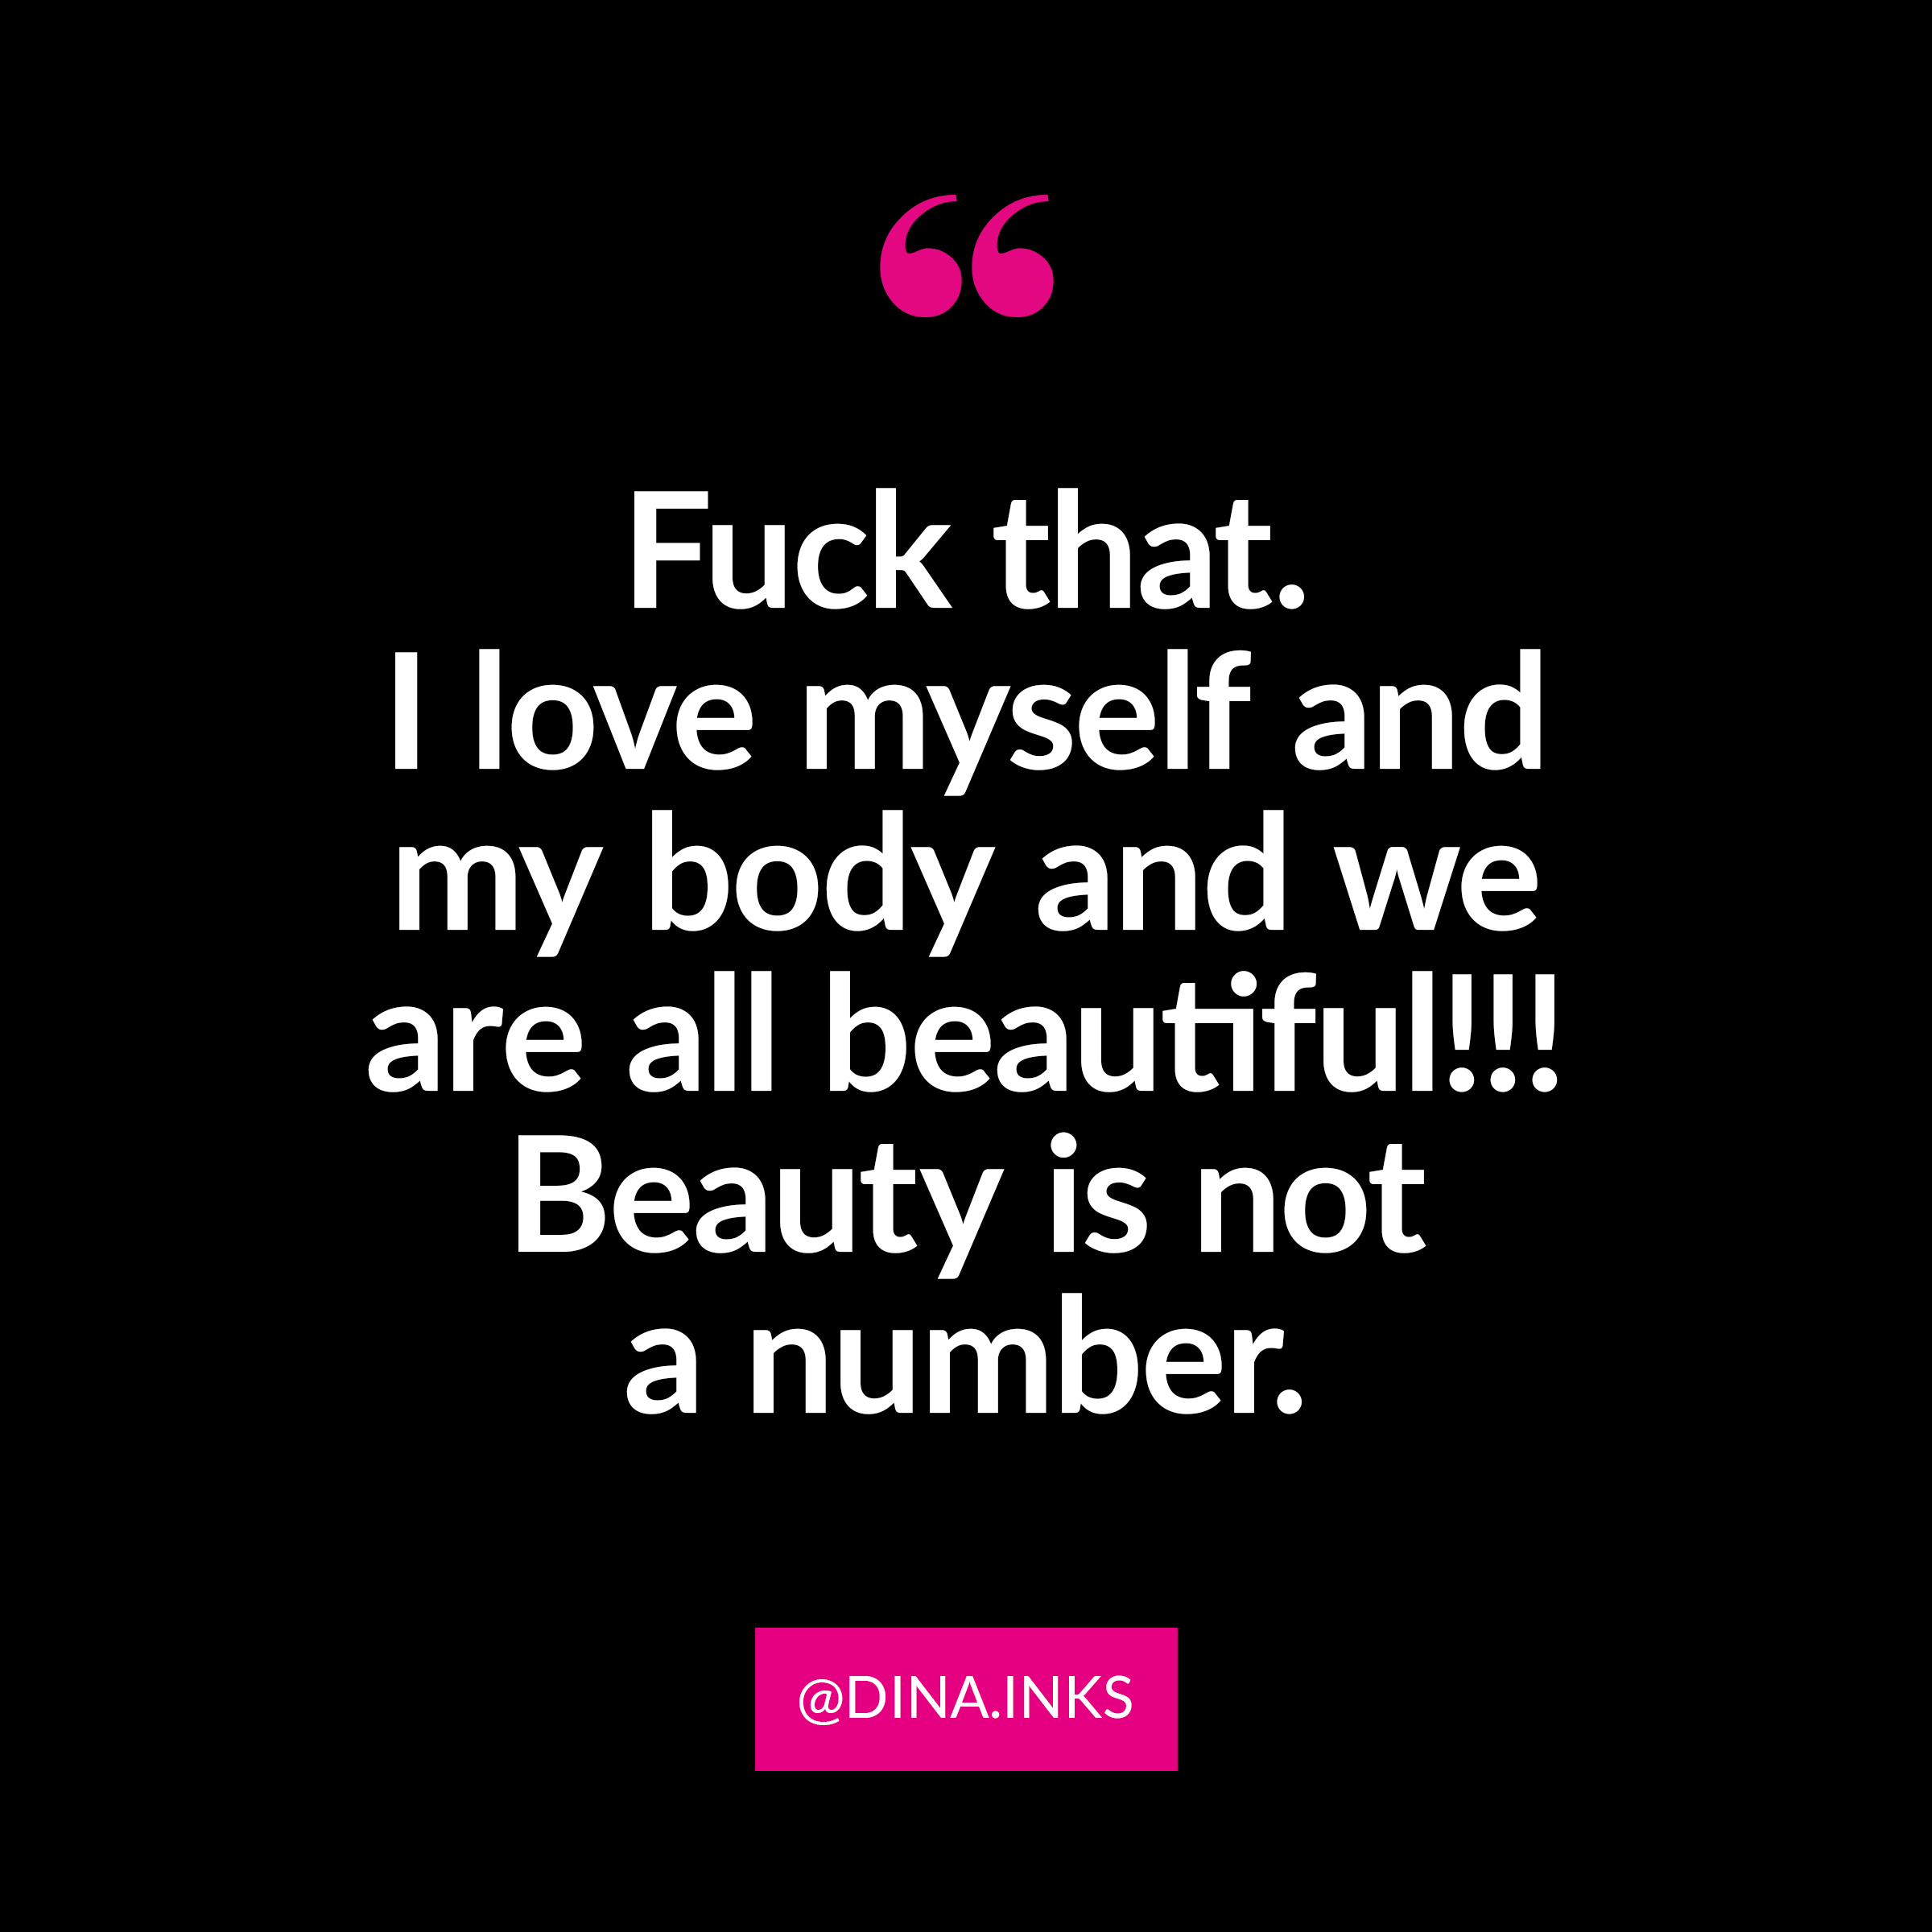 """☆ Submission via  @dina.inks  ☆   Fuck beauty standards - according to them - I """"weigh too much,"""" """"my tits are too small,"""" and certainly don't fit into the standards! Fuck that. I love myself and my body and we are all beautiful!!! Beauty is not a number. My measurements: Bust: 34 • Waist: 32 • Hips: 39 • Weight: 157 • Size: 10"""